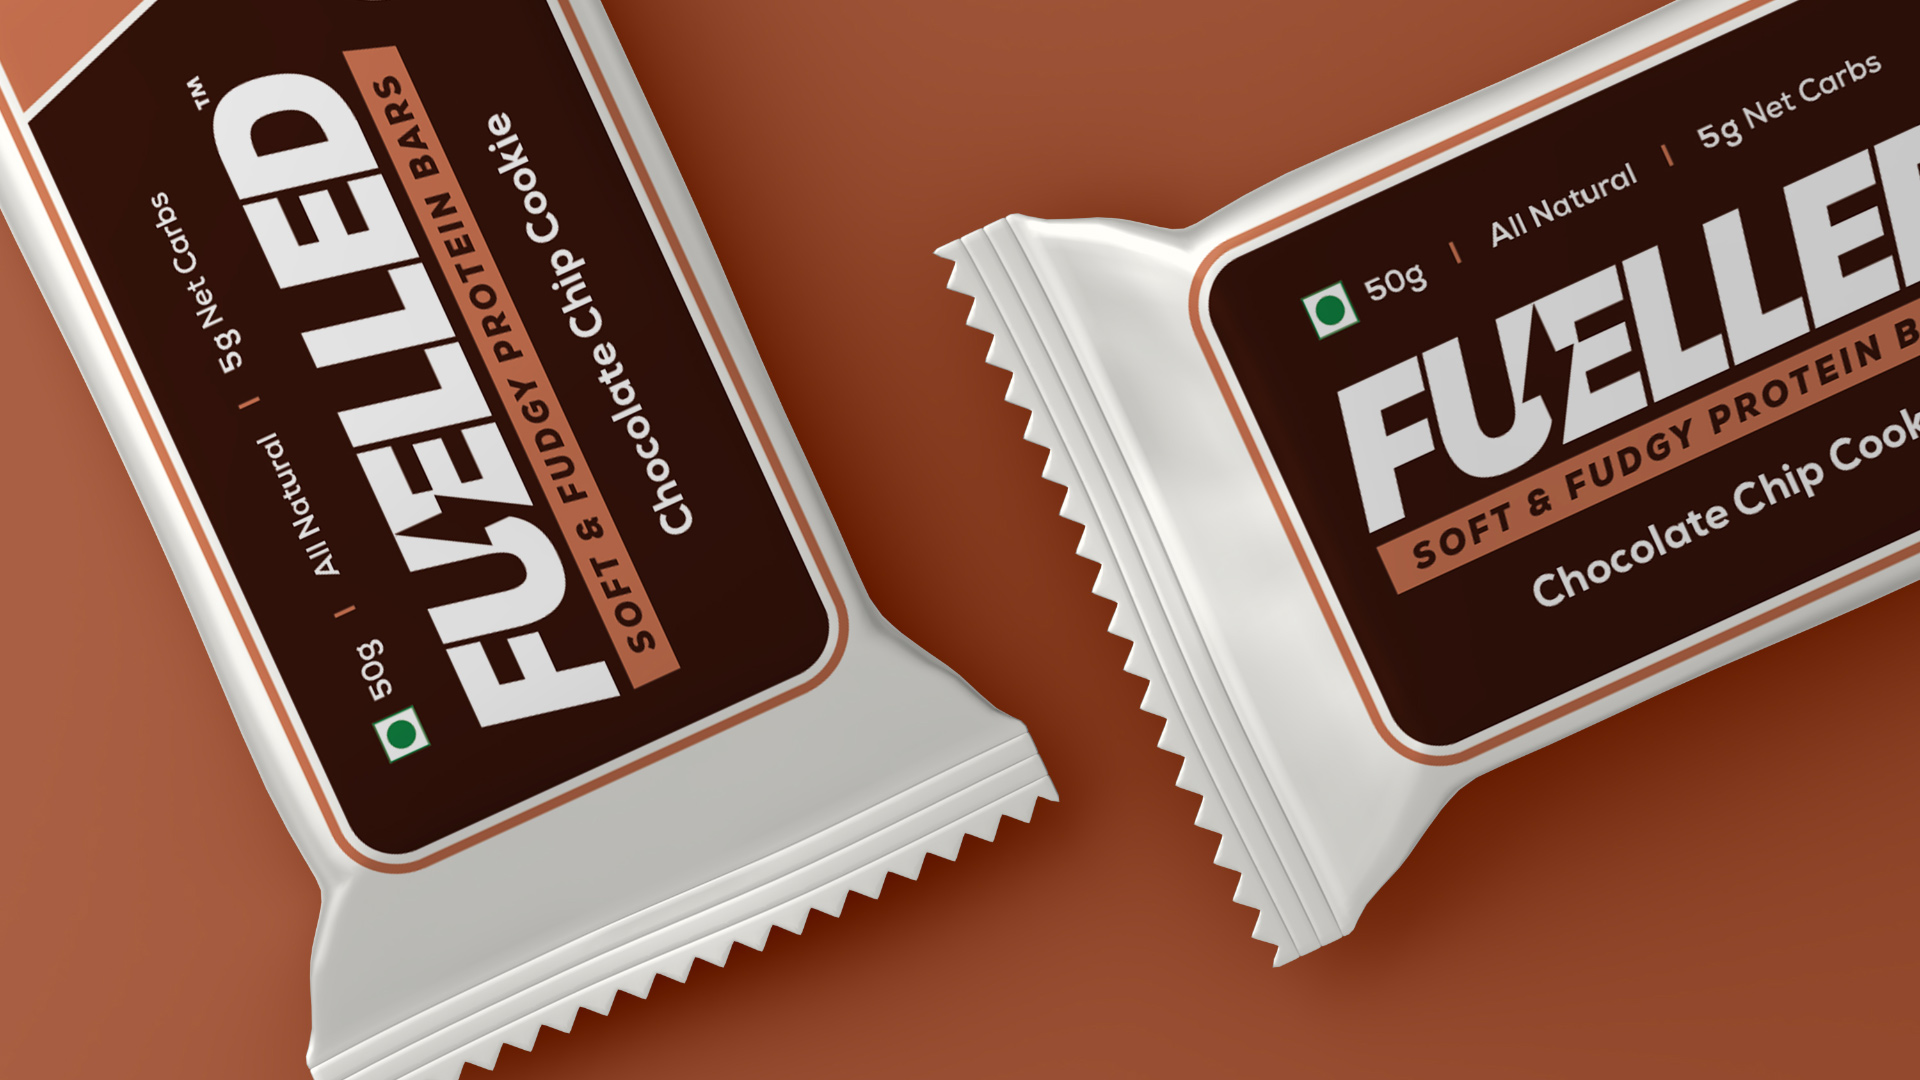 Brand Identity and Packaging Design for a Fuelled, a Gourmet Nutrition Company